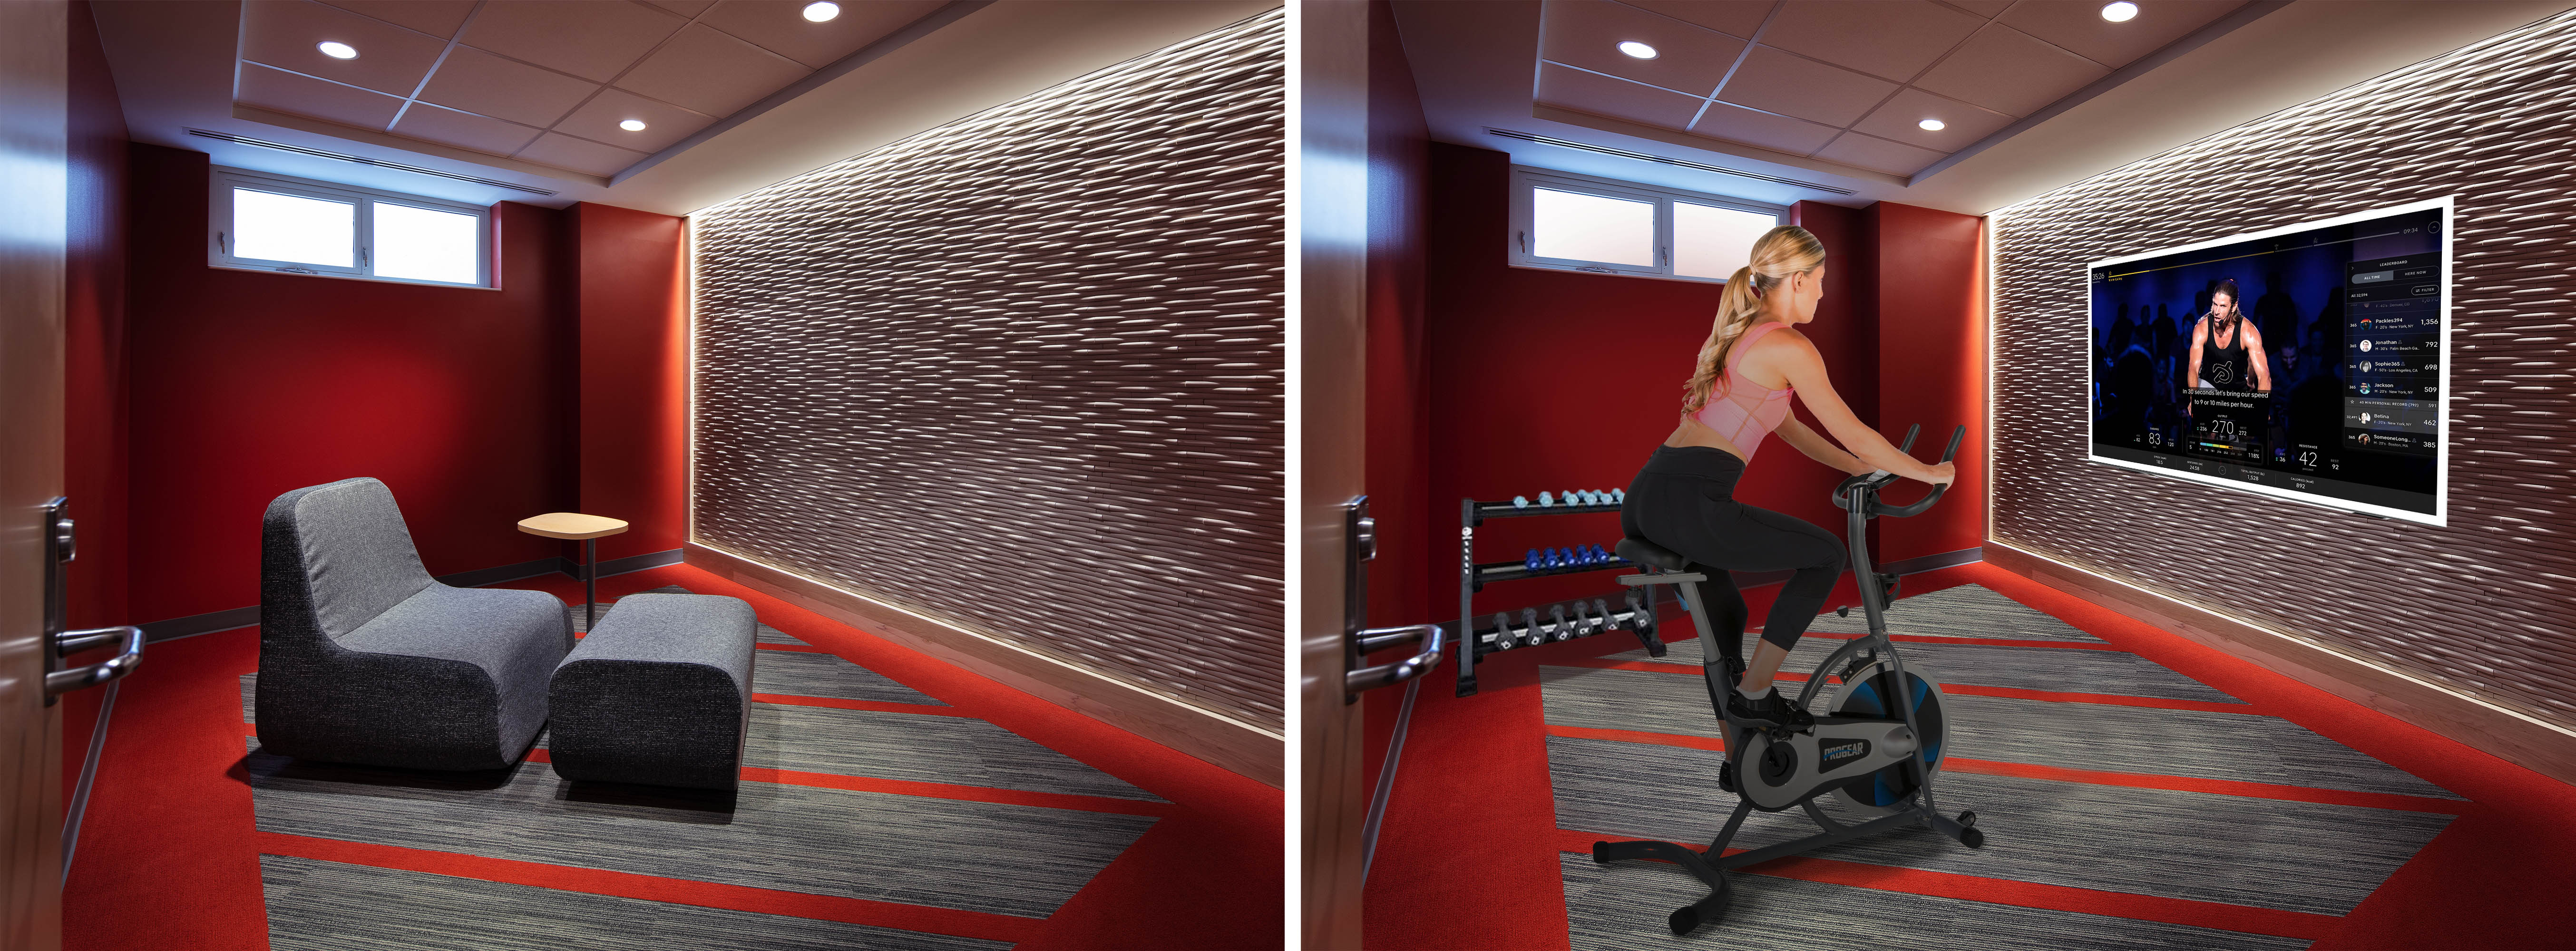 Example: a meditation room transformed to a virtual hub for fitness classes. (click to expand)